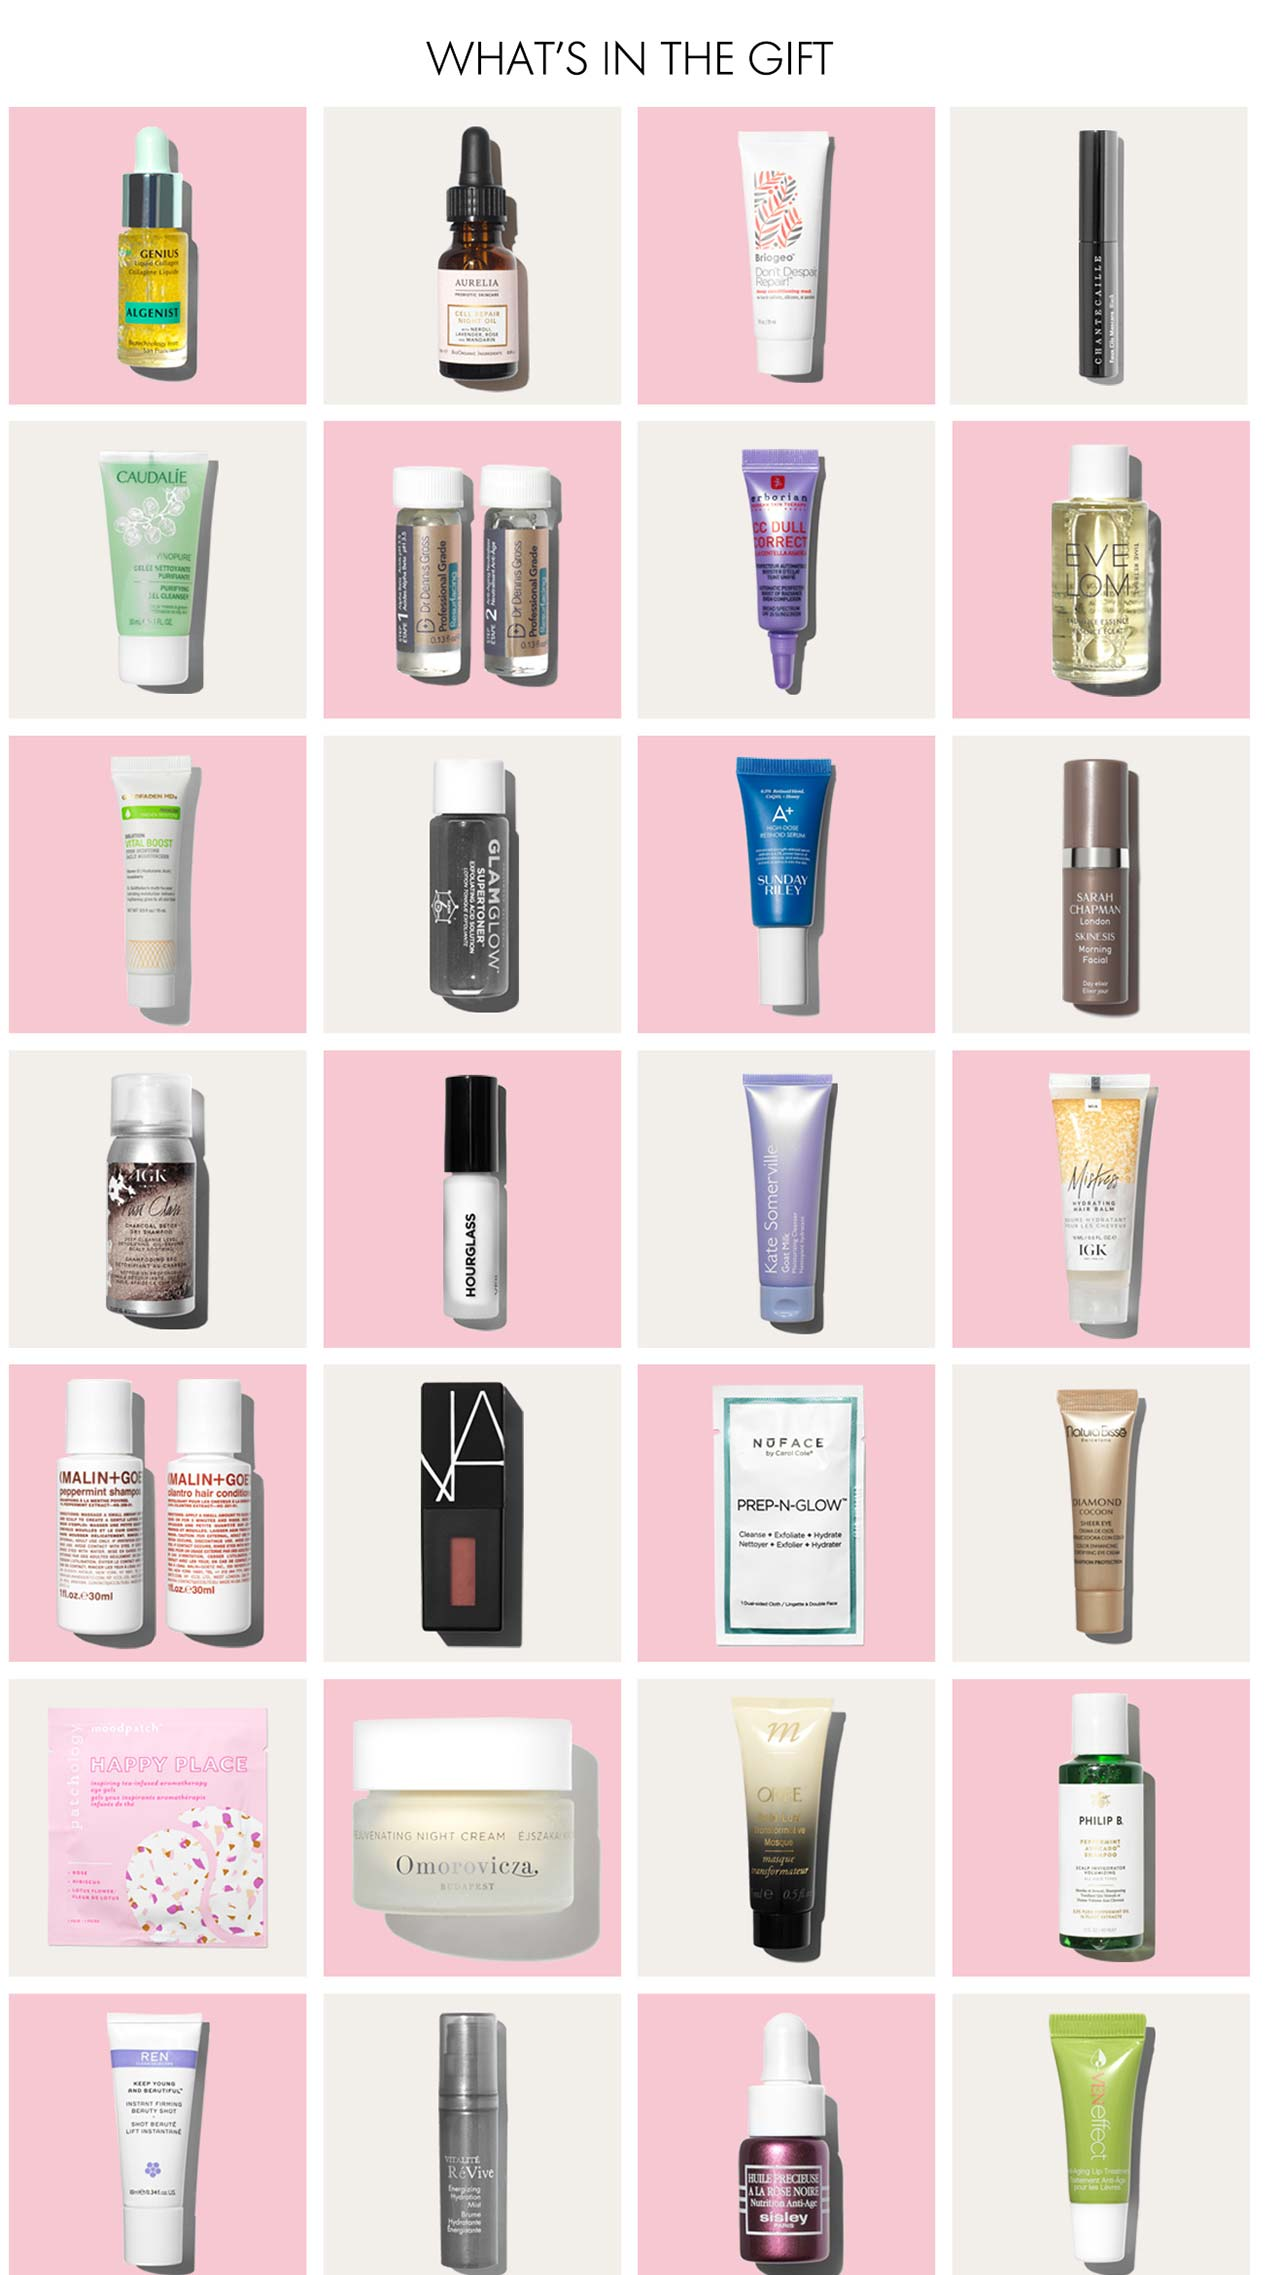 Space NK The Experts' Edit Gift наполнение